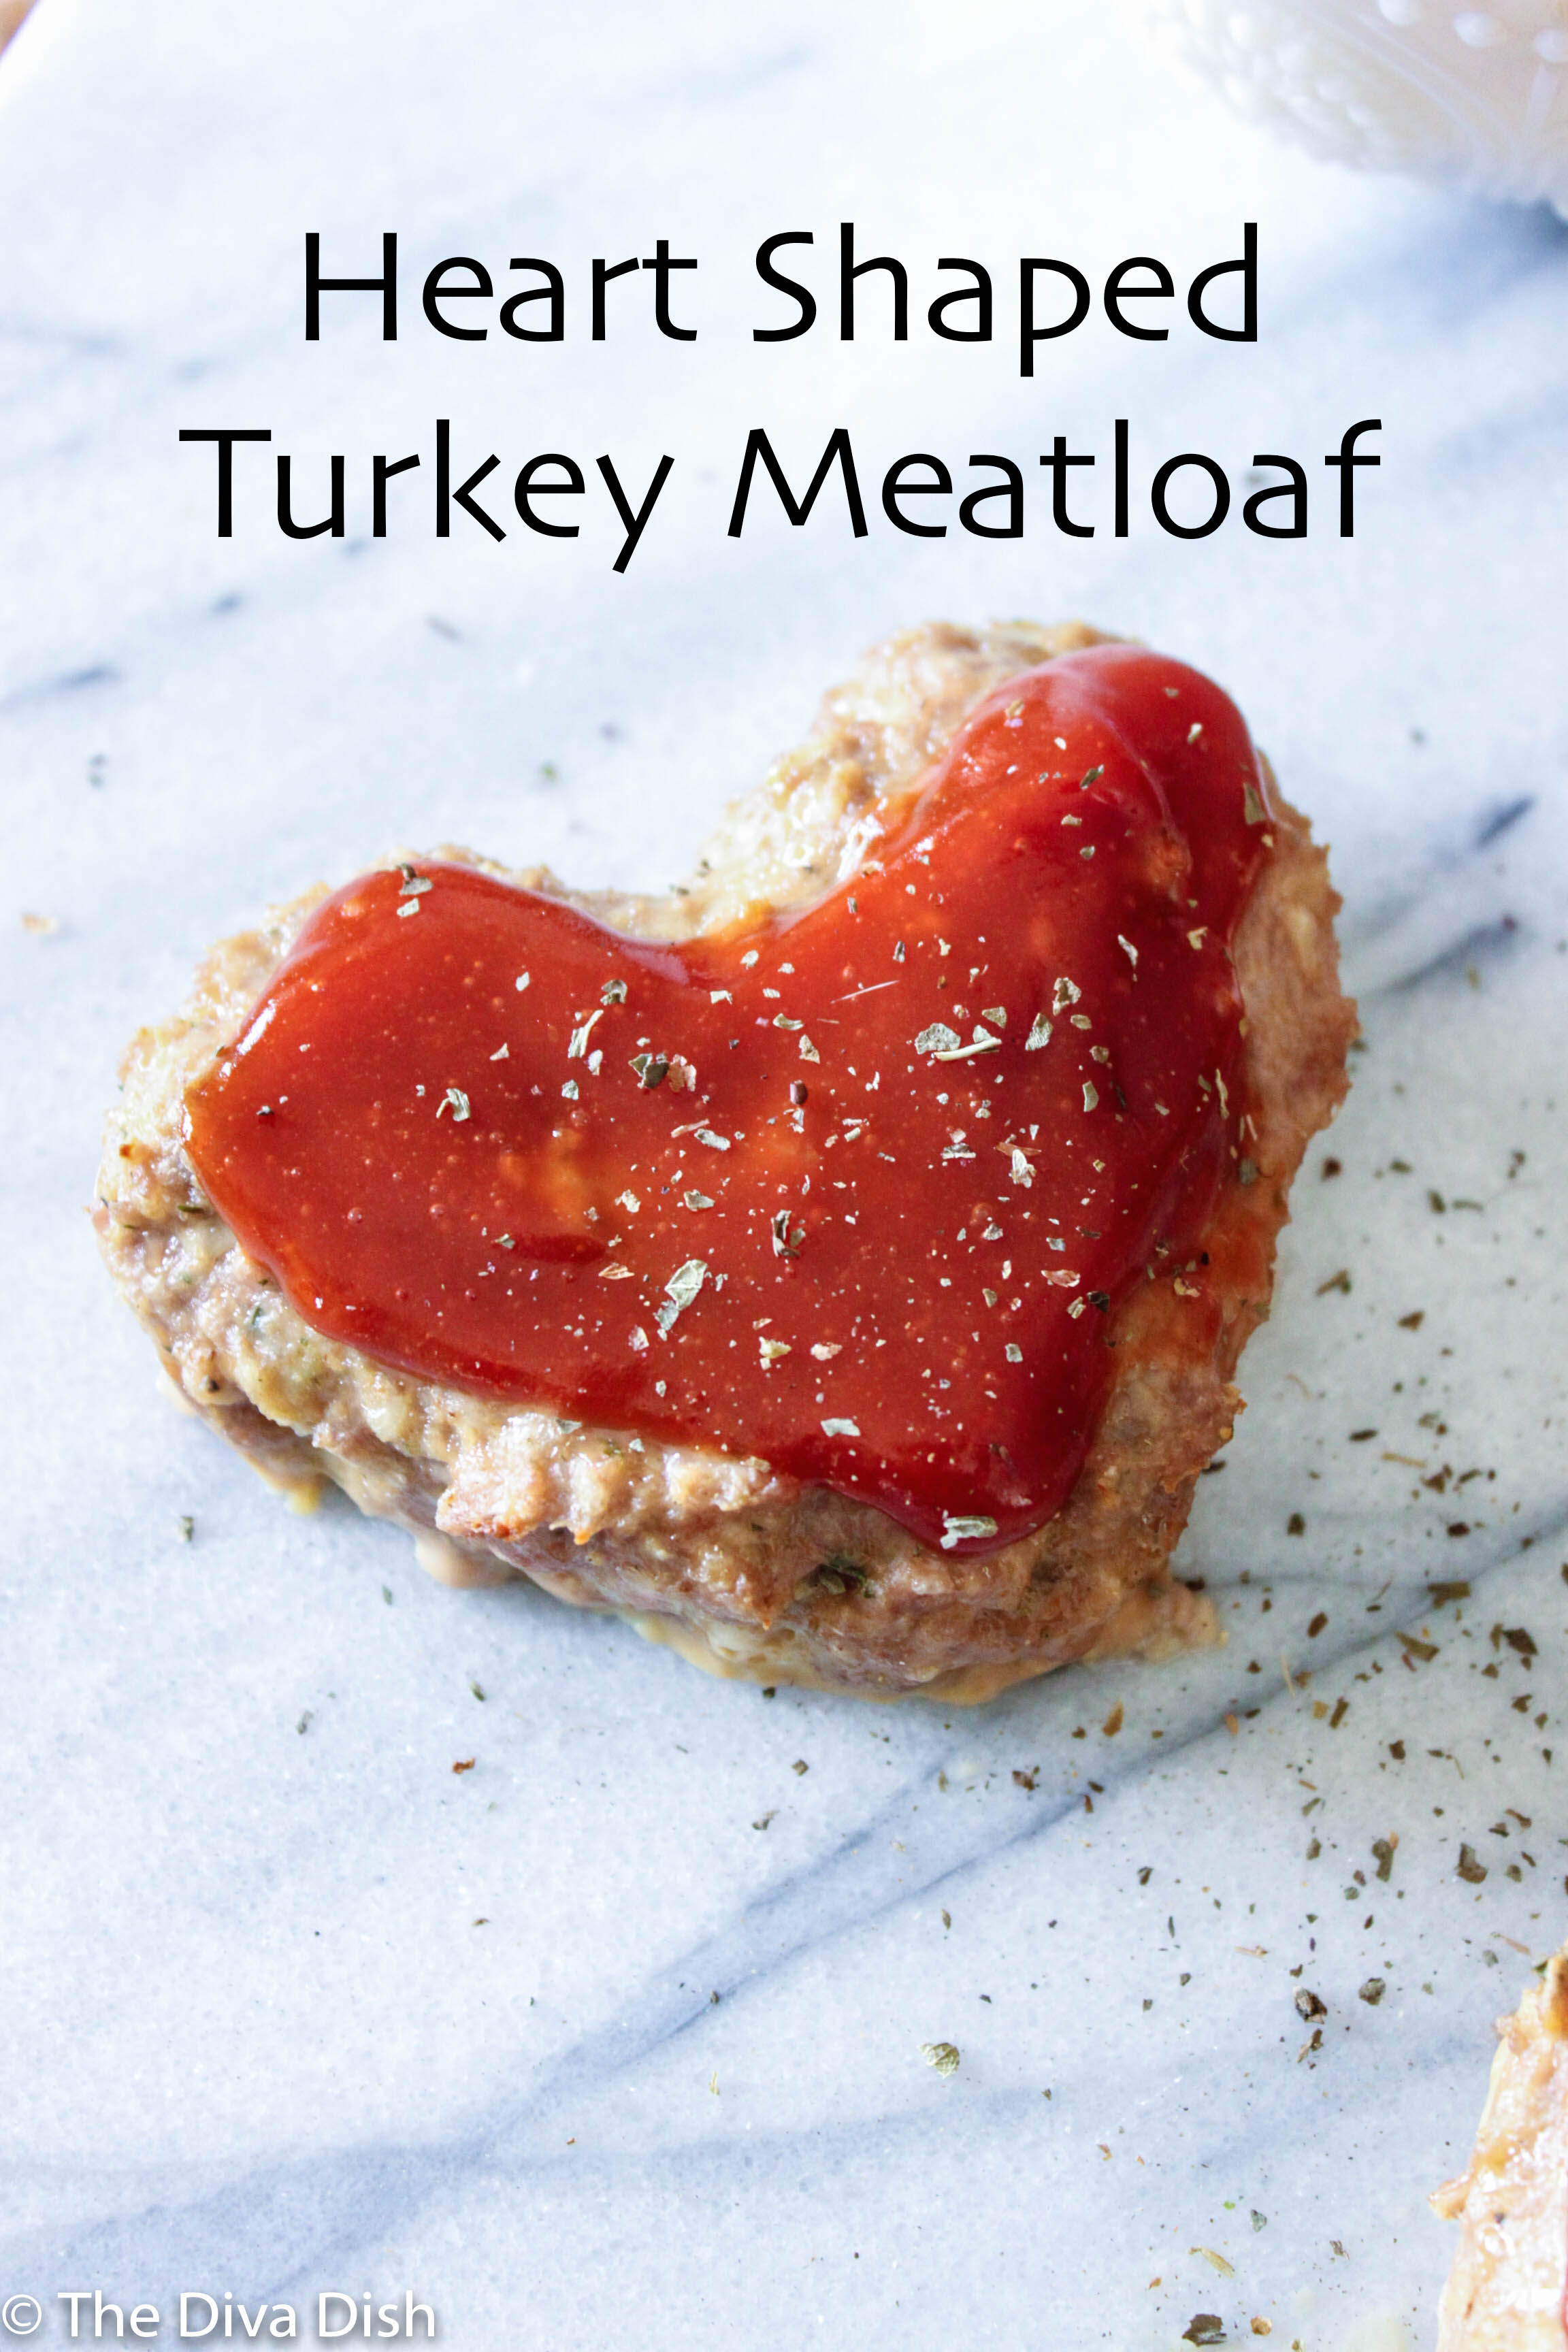 Heart Shaped Turkey Meatloaf via The Diva Dish